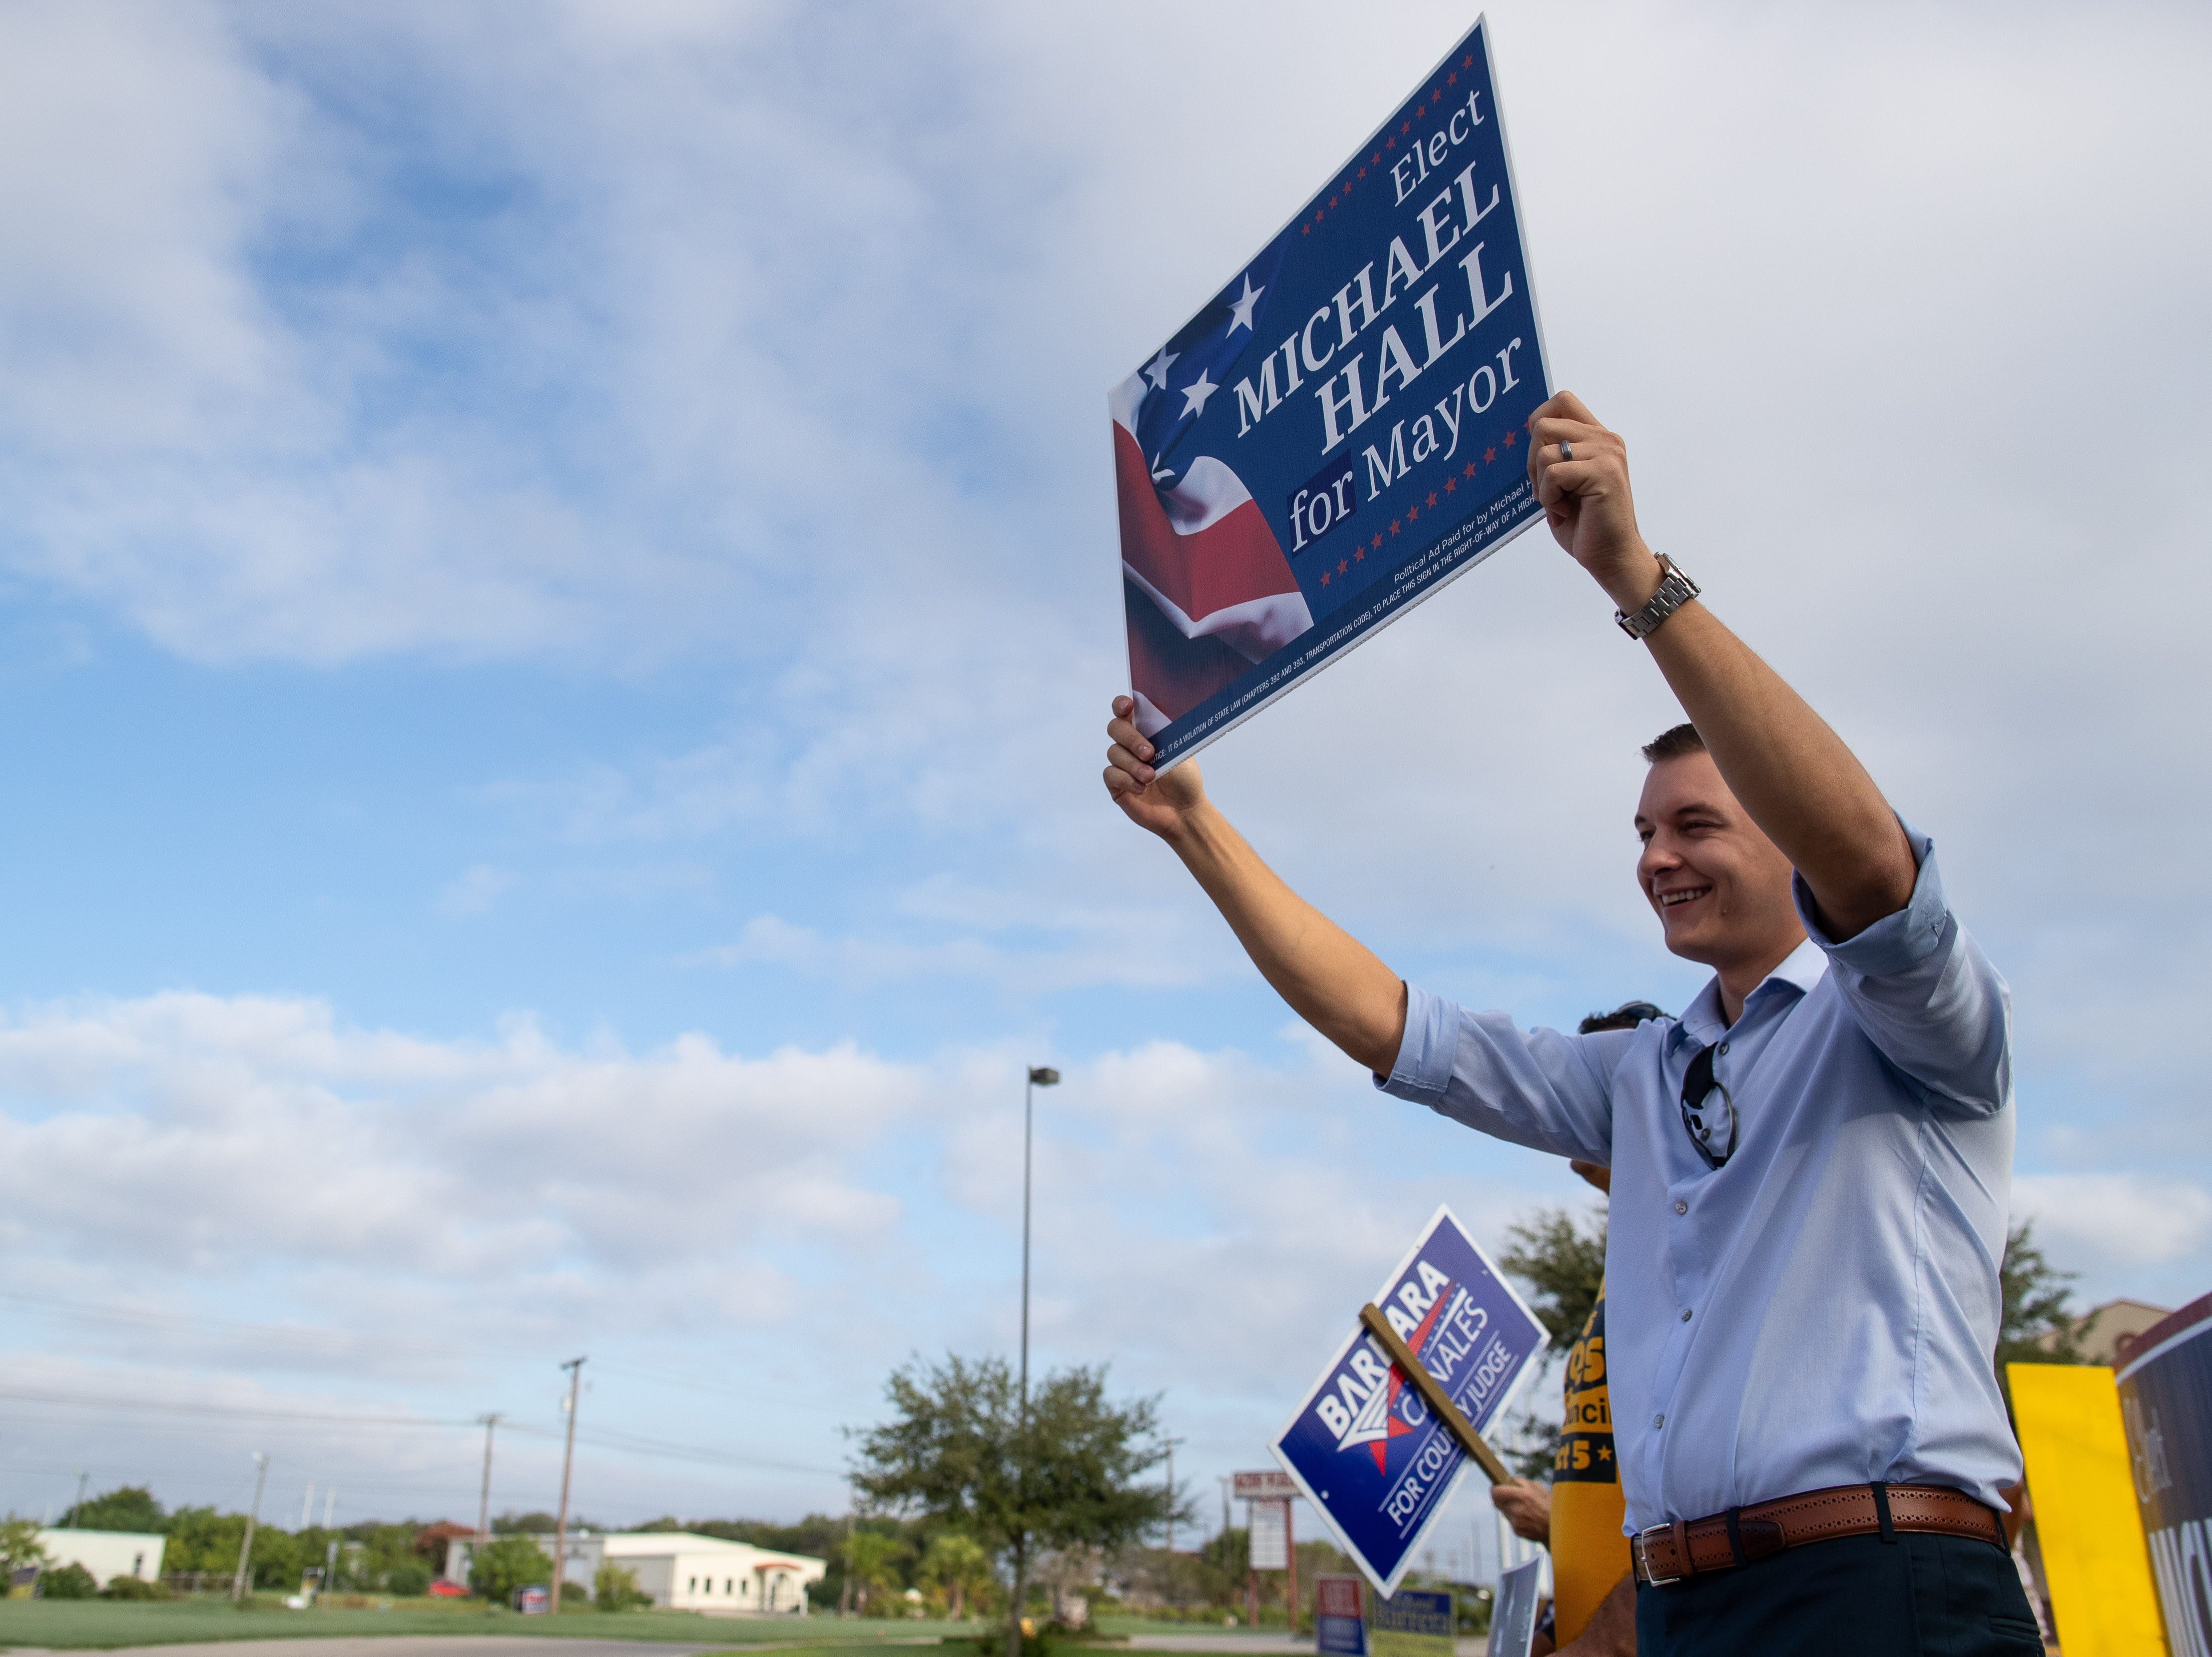 Corpus Christi mayoral candidate Michael Hall campaigns outside the Valencia polling location on Tuesday, Nov. 6, 2018.